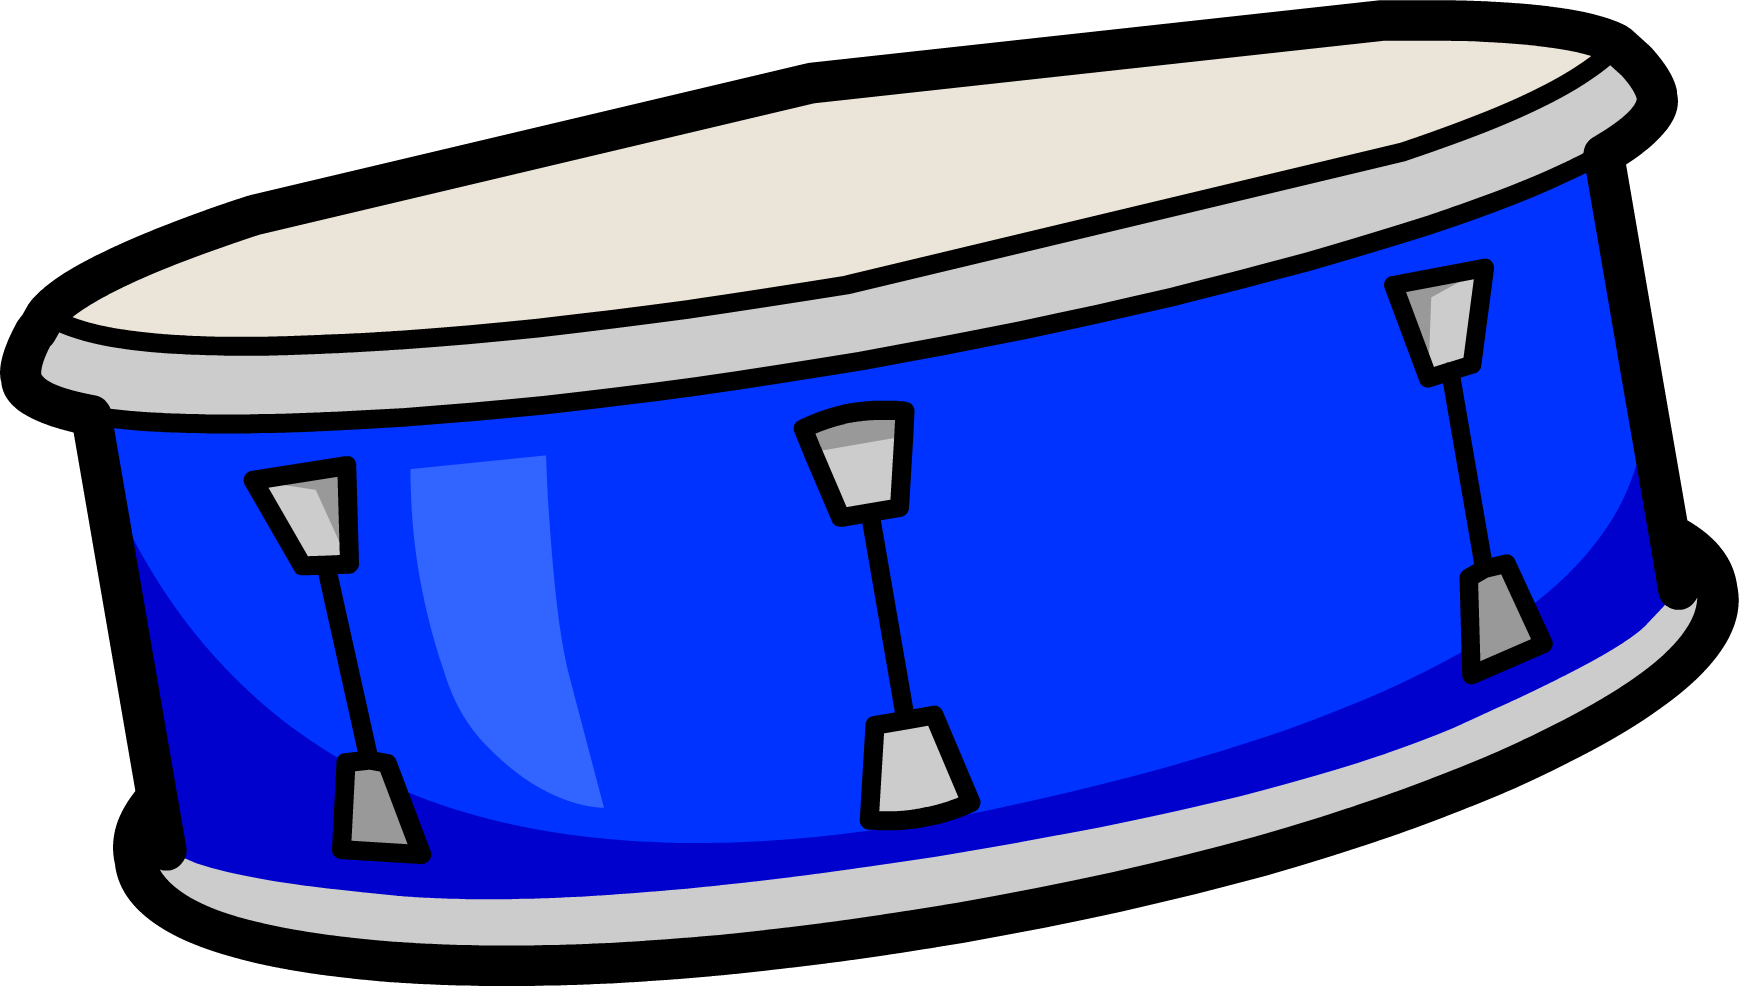 Snare Drums Clipart 38515.